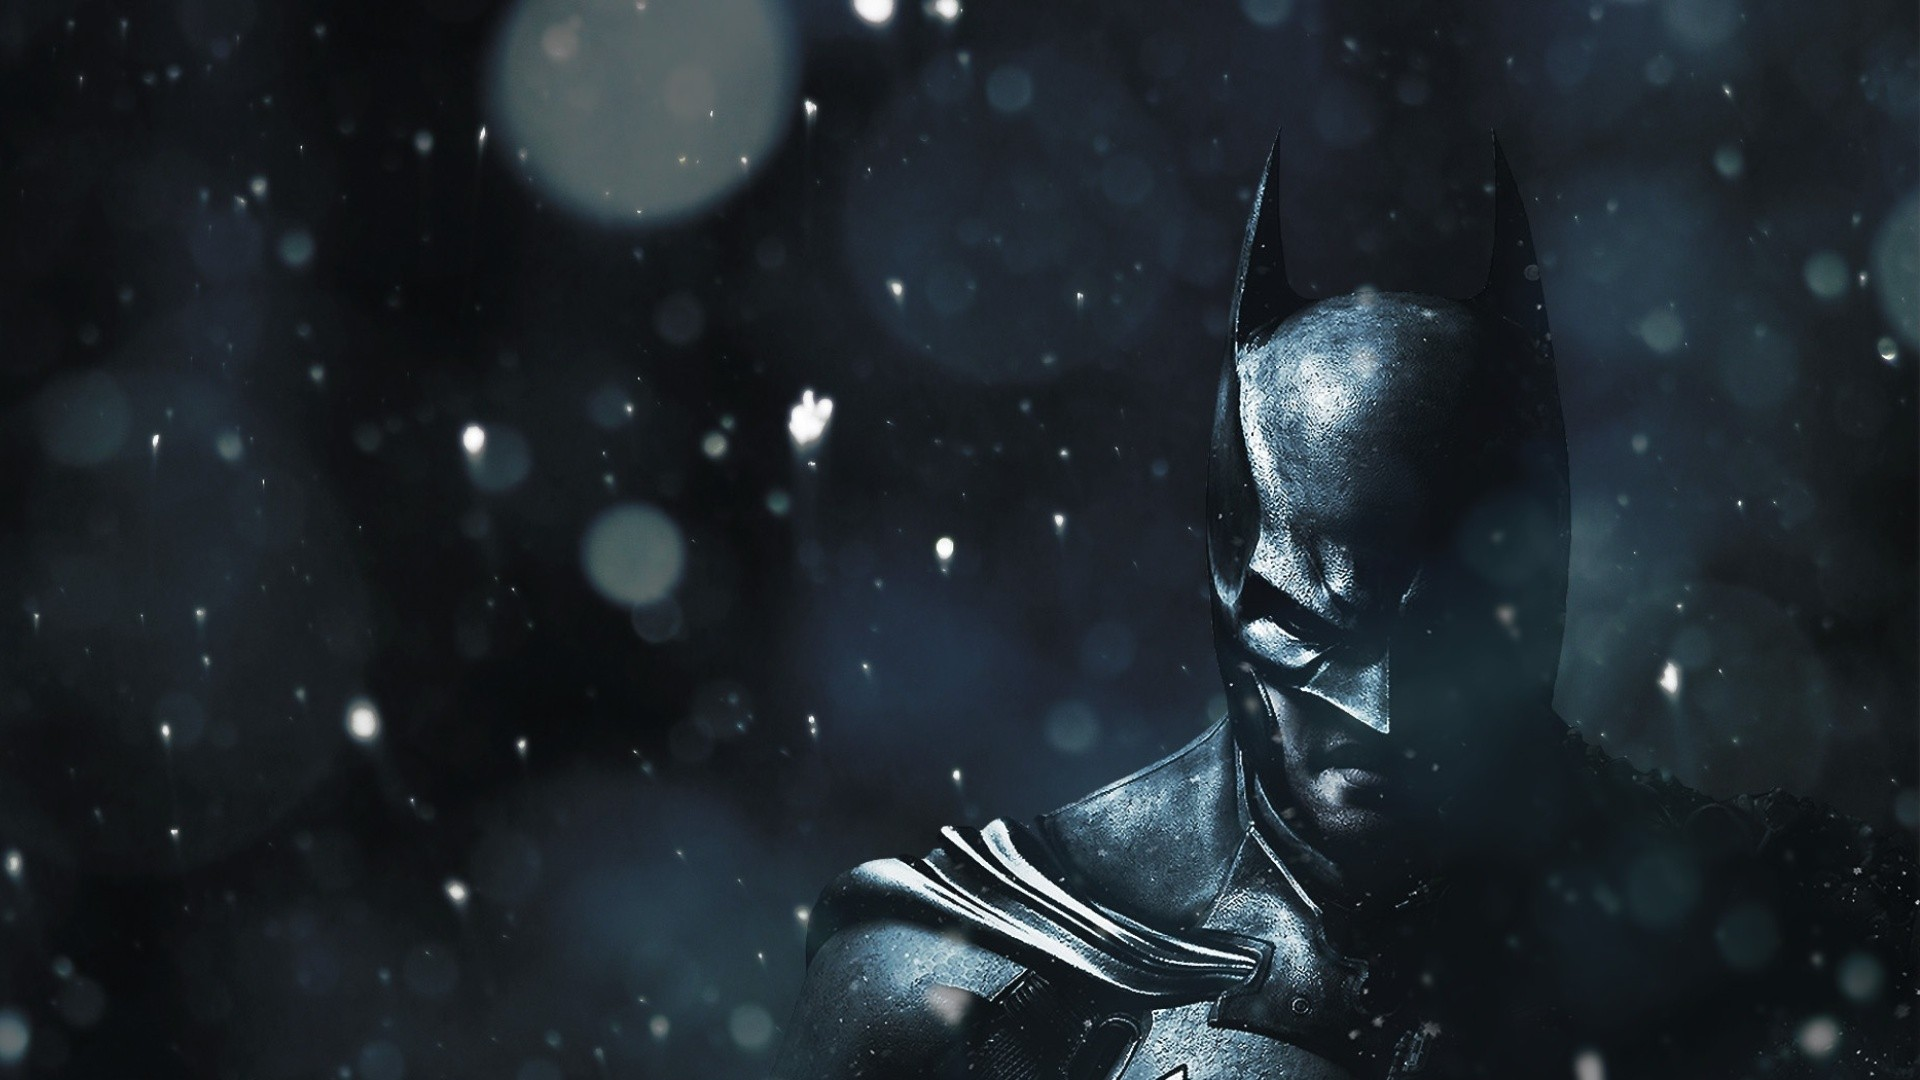 Hd Batman Wallpapers